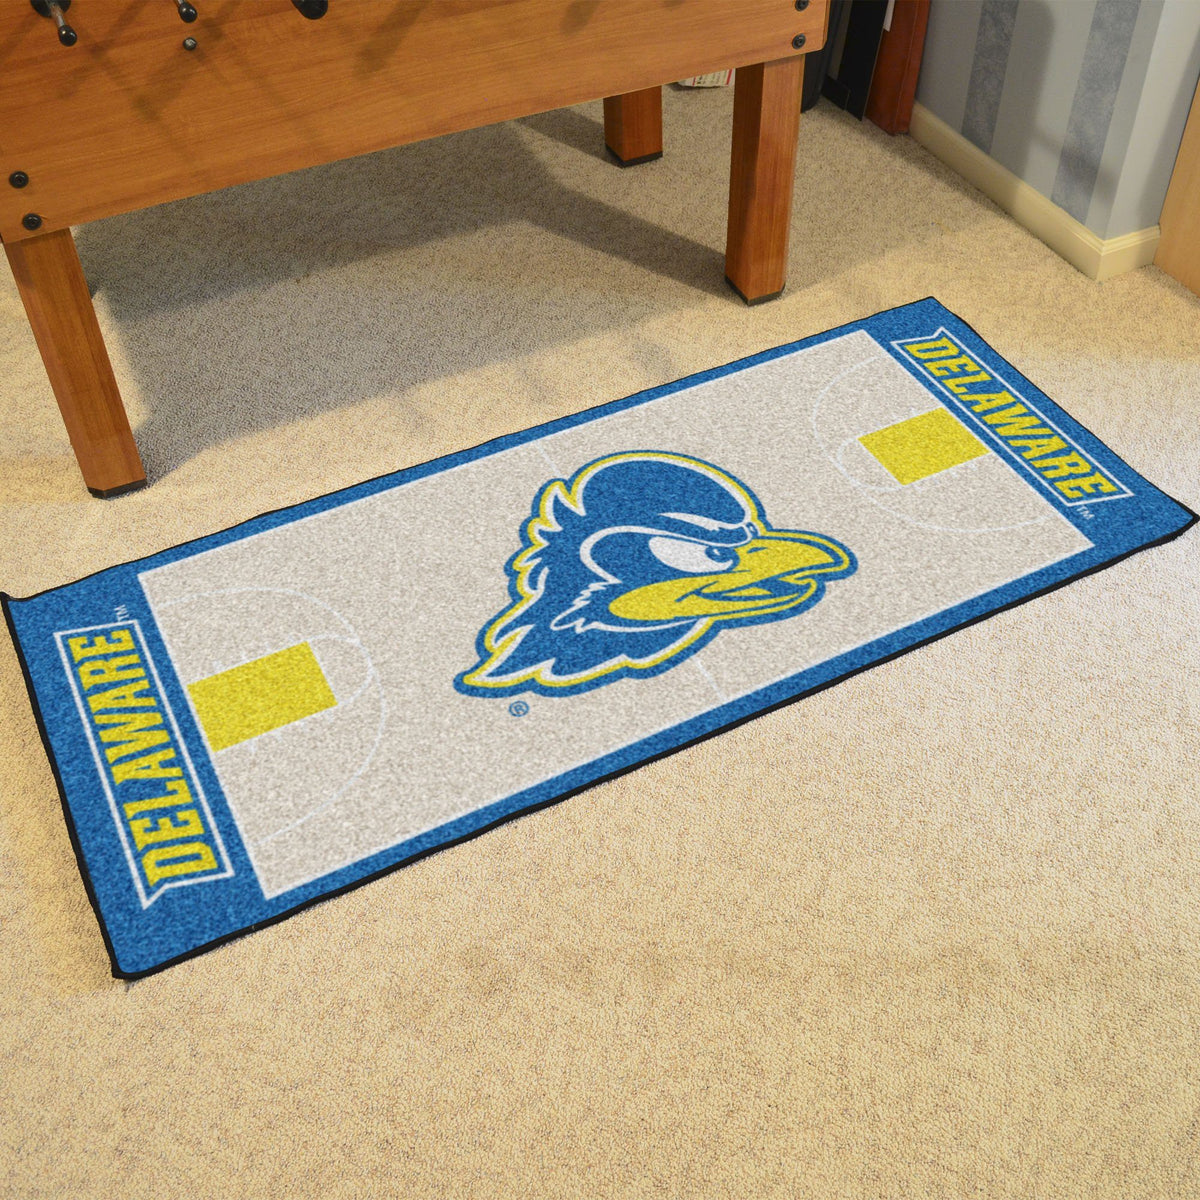 Collegiate - NCAA Basketball Runner Collegiate Mats, Rectangular Mats, NCAA Basketball Runner, Collegiate, Home Fan Mats Delaware